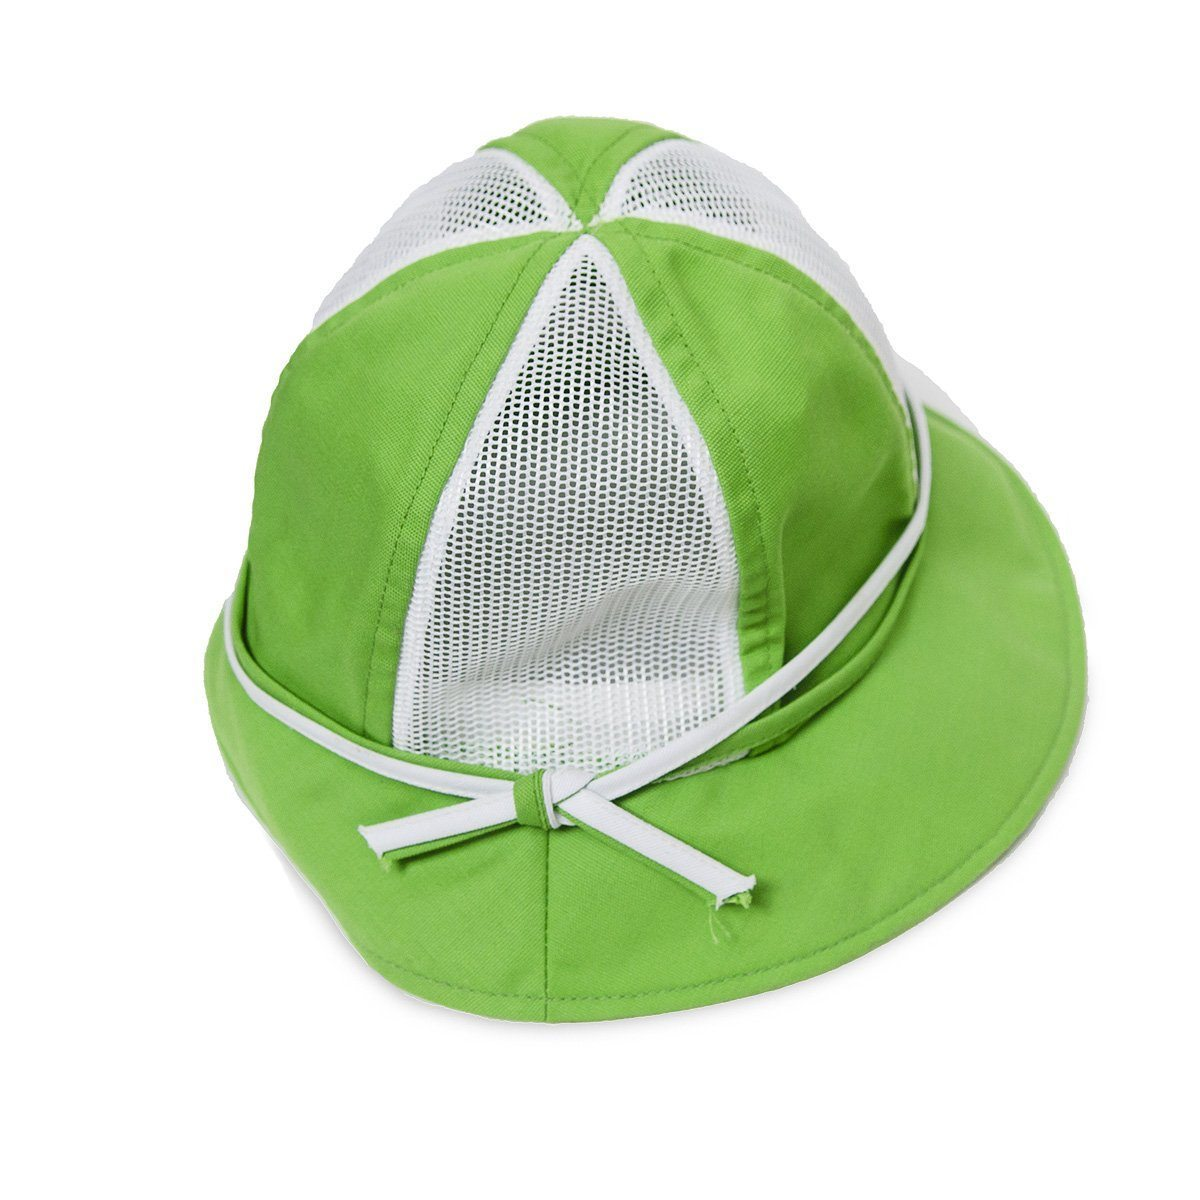 Vintage 70s Bright Green Golf – Tennis Hat by Happy Cappers